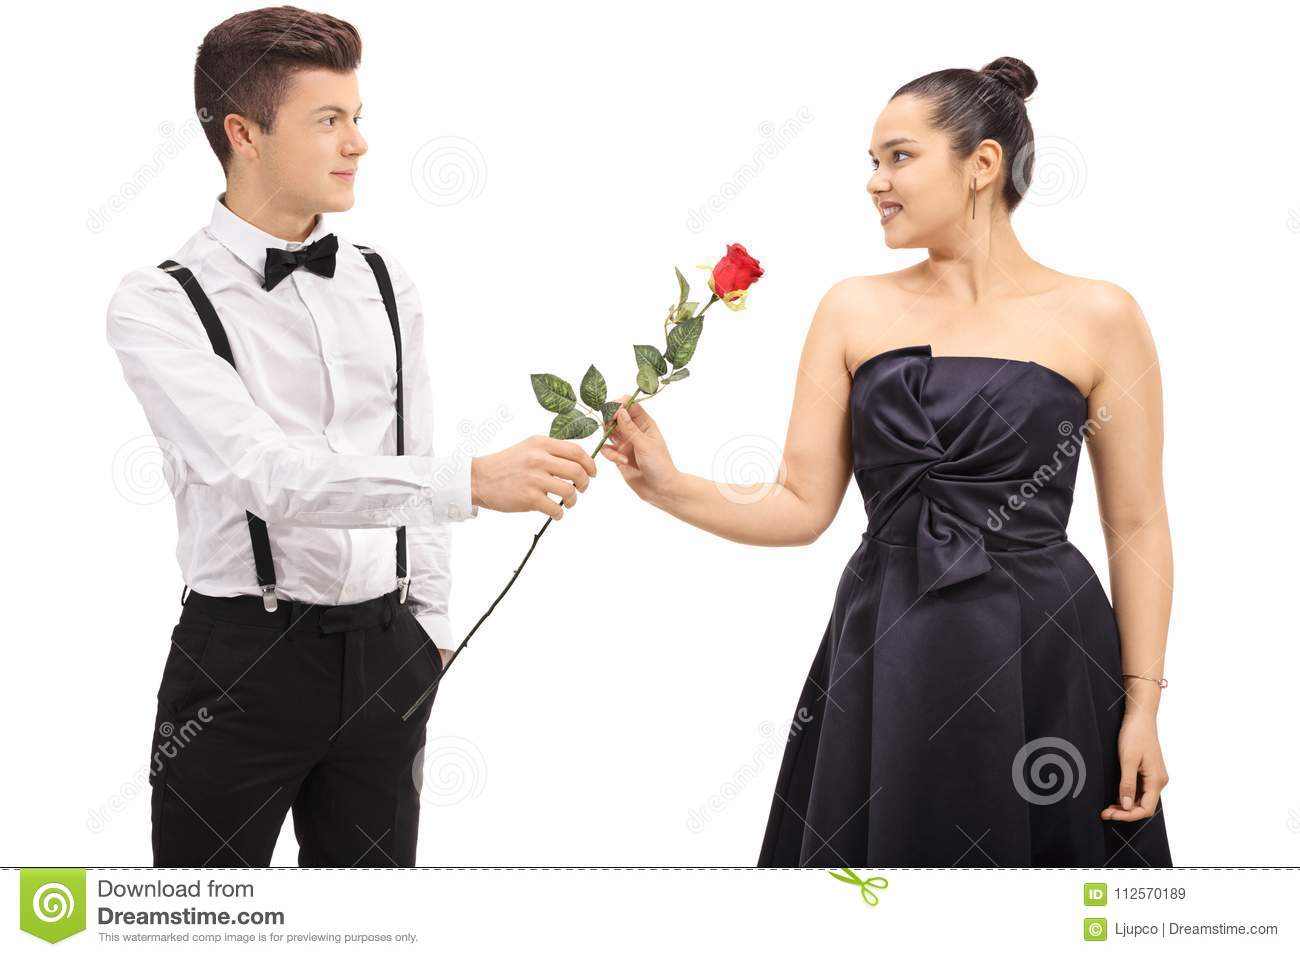 Boy giving rose to girl stock images download 172 - Boy propose girl with rose image ...